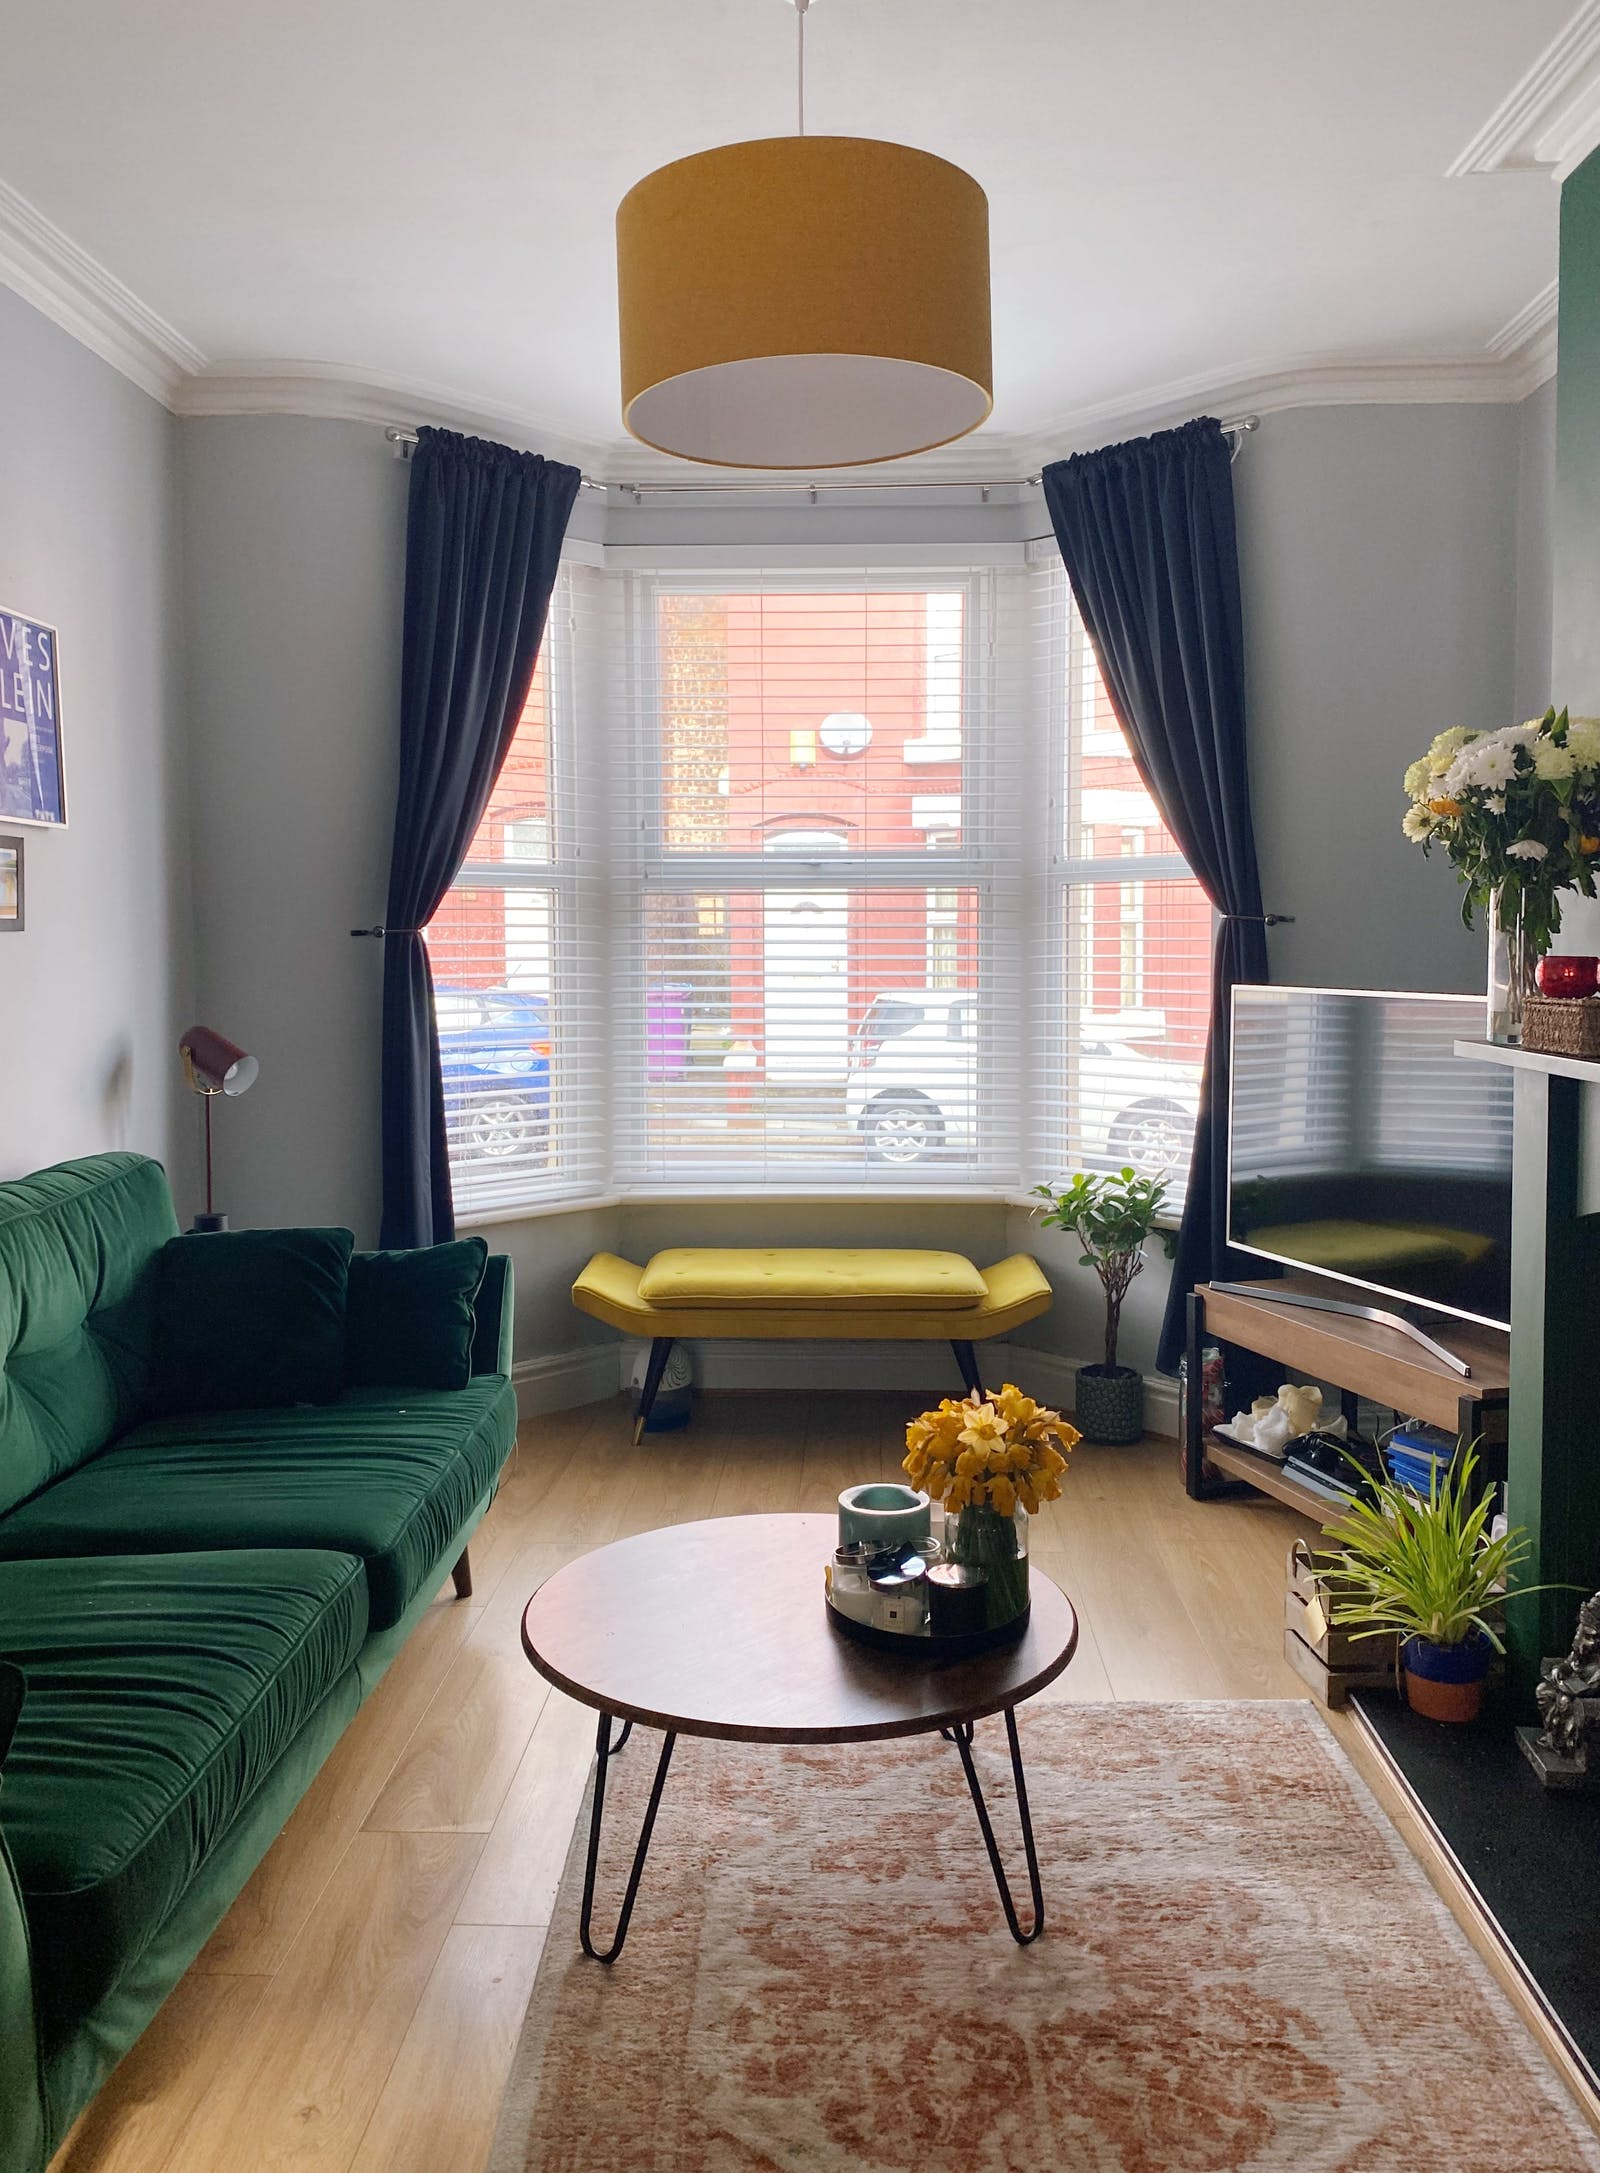 Bright living room with an emerald green sofa